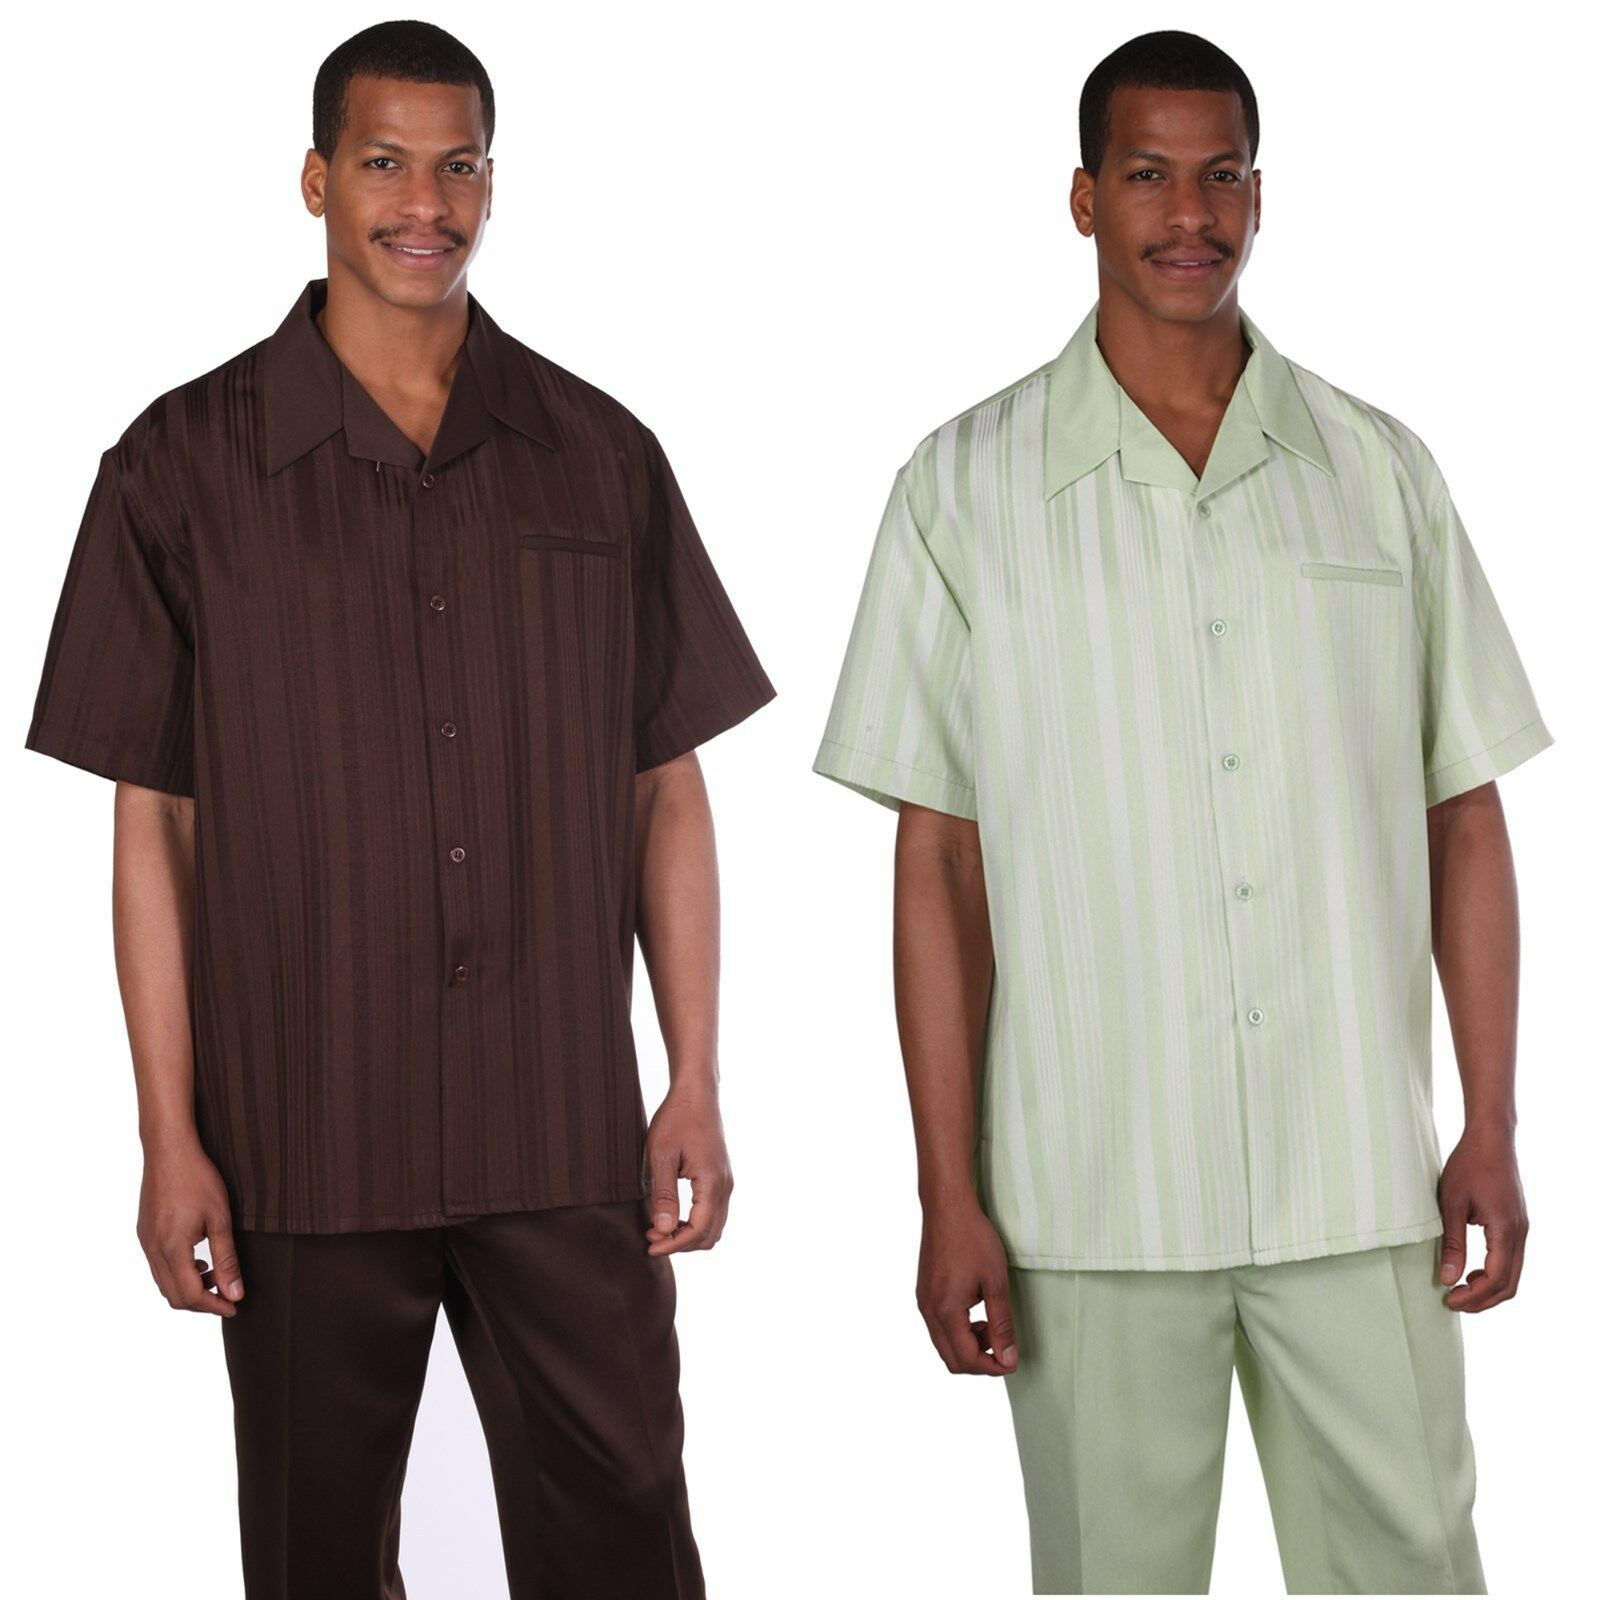 MEN'S SHORT SLEEVE TWO PIECE SET, CASUAL STRIPED WALKING